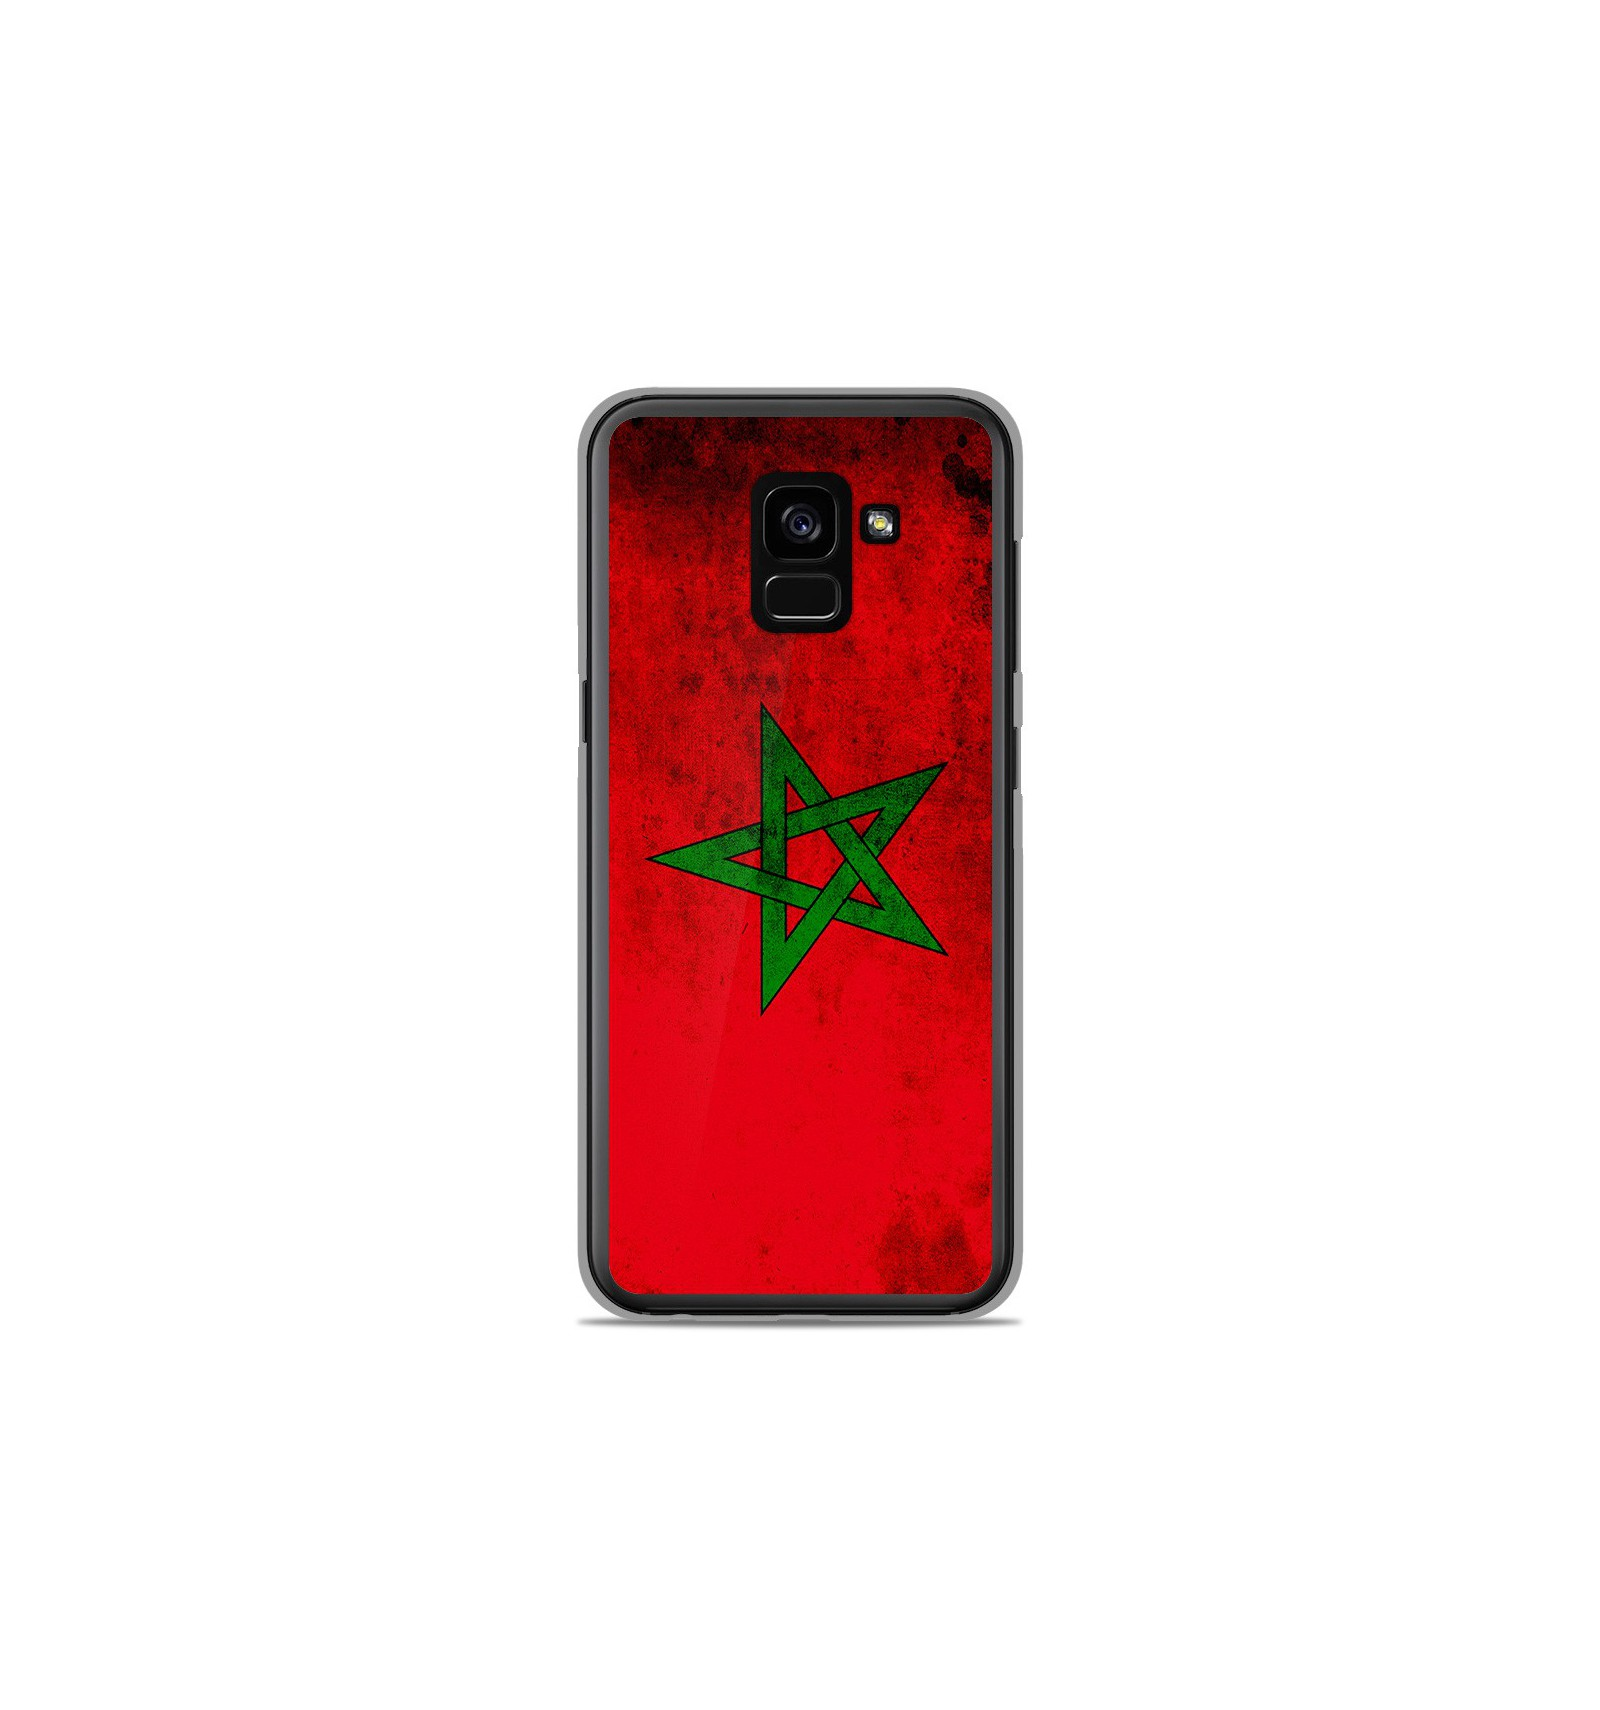 coque en silicone samsung galaxy a8 2018 drapeau maroc. Black Bedroom Furniture Sets. Home Design Ideas